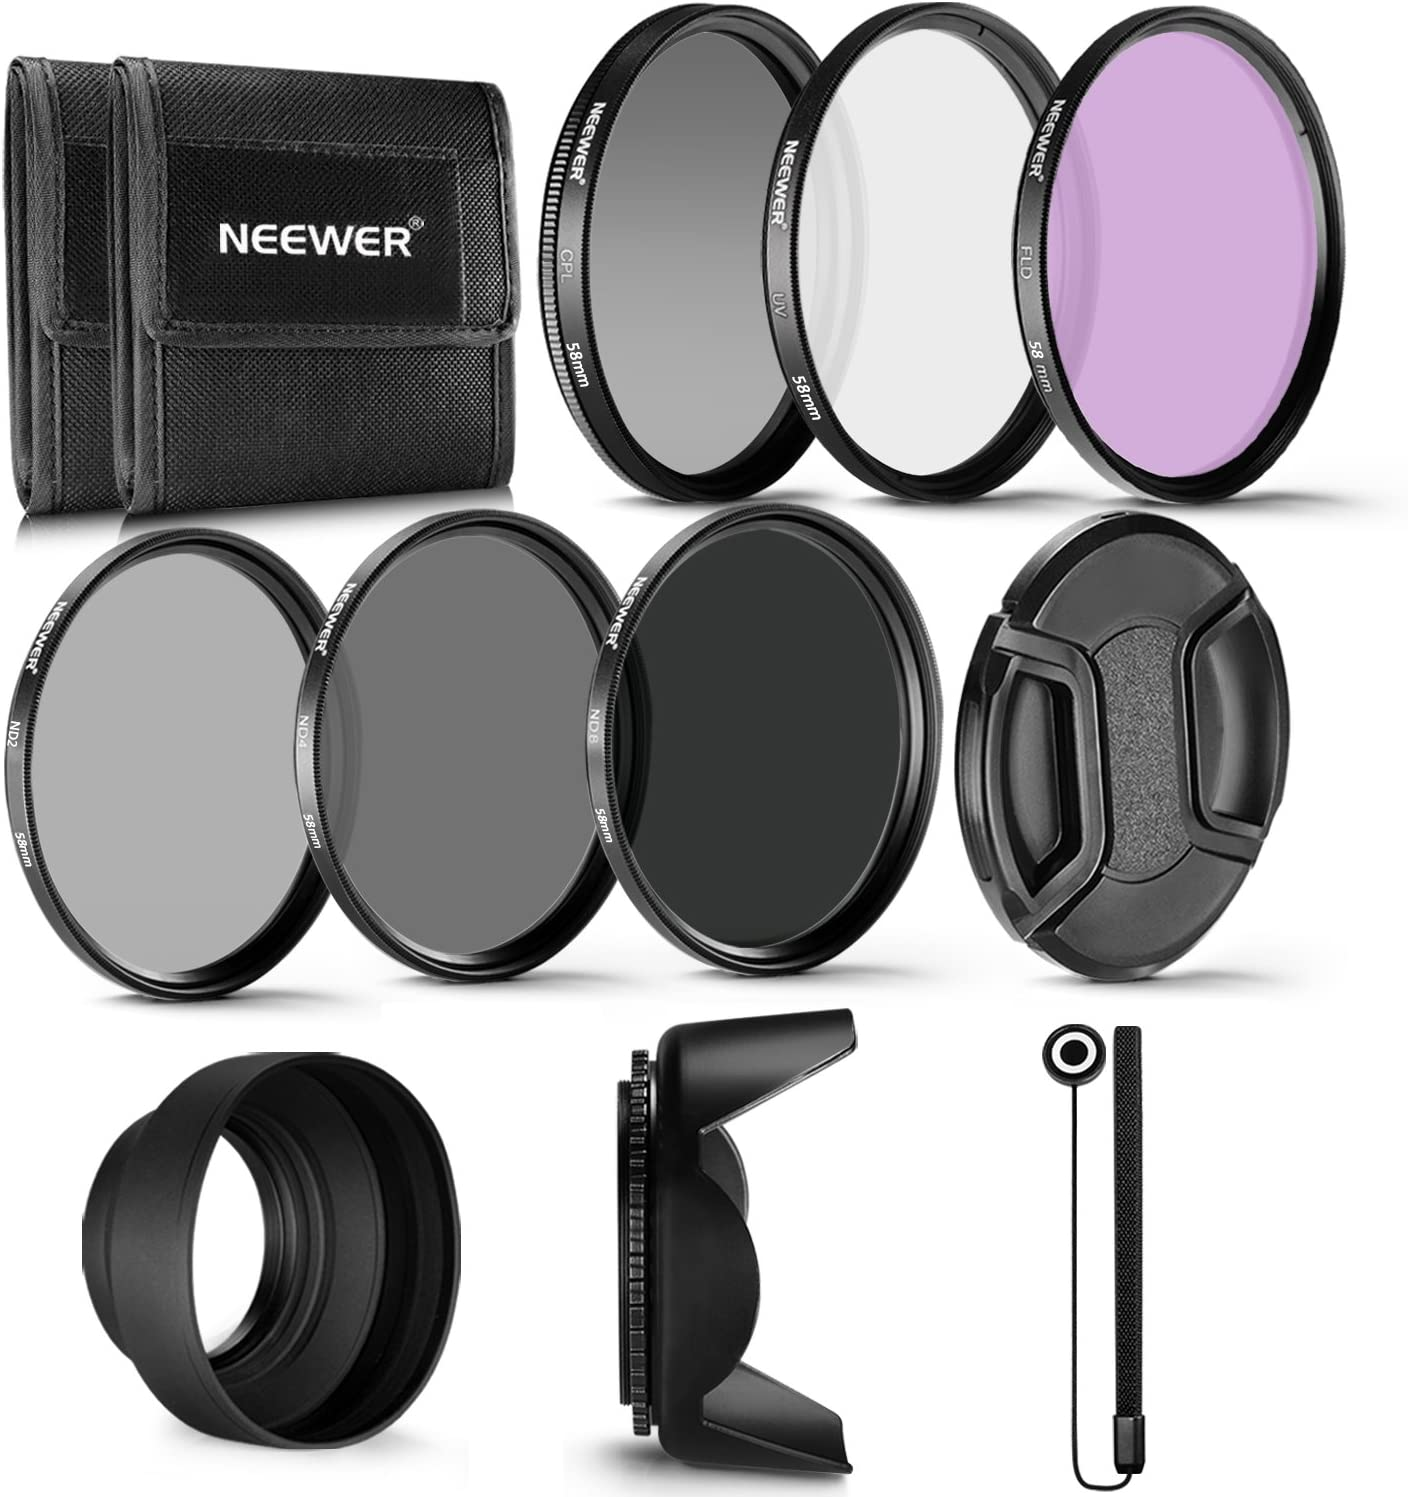 Neewer 58MM Professional Max 77% OFF Fixed price for sale UV CPL FLD Filter D and Lens Neutral ND